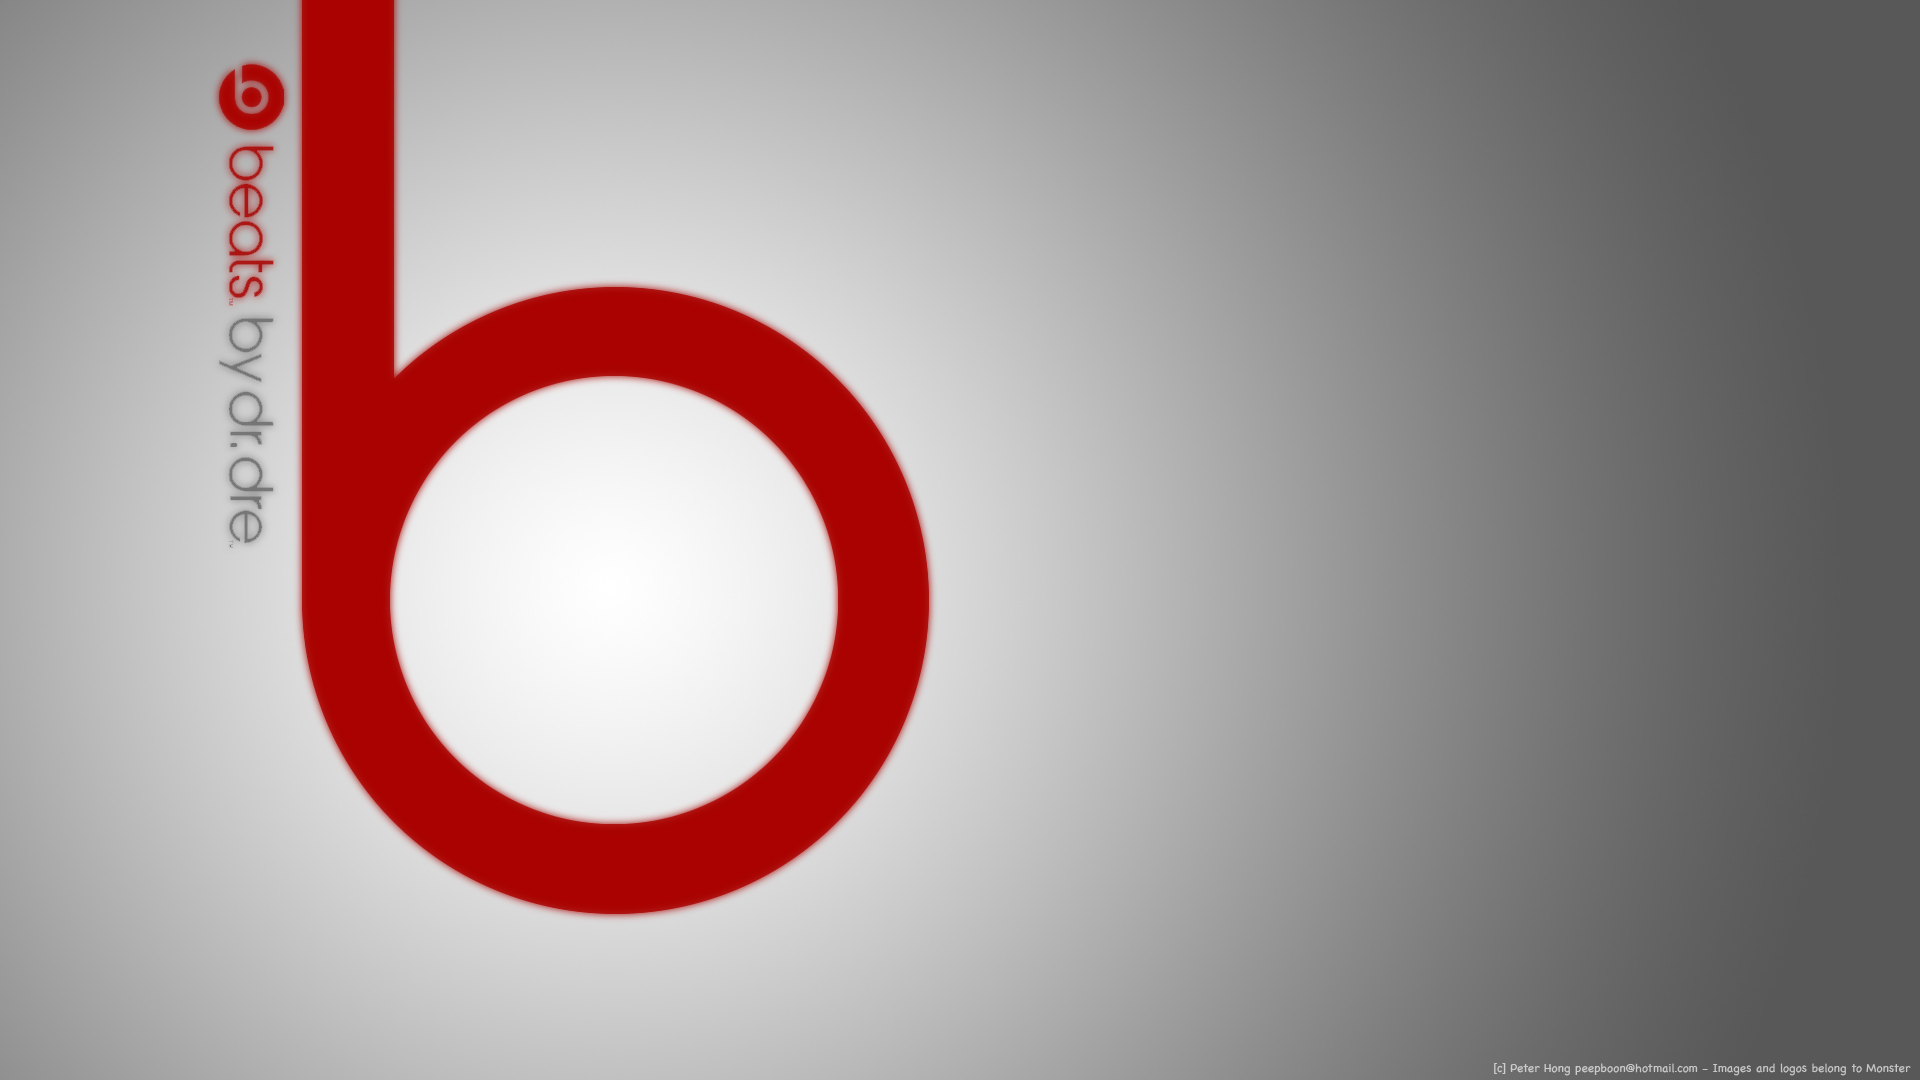 Awesome Beats by Dre Wallpaper